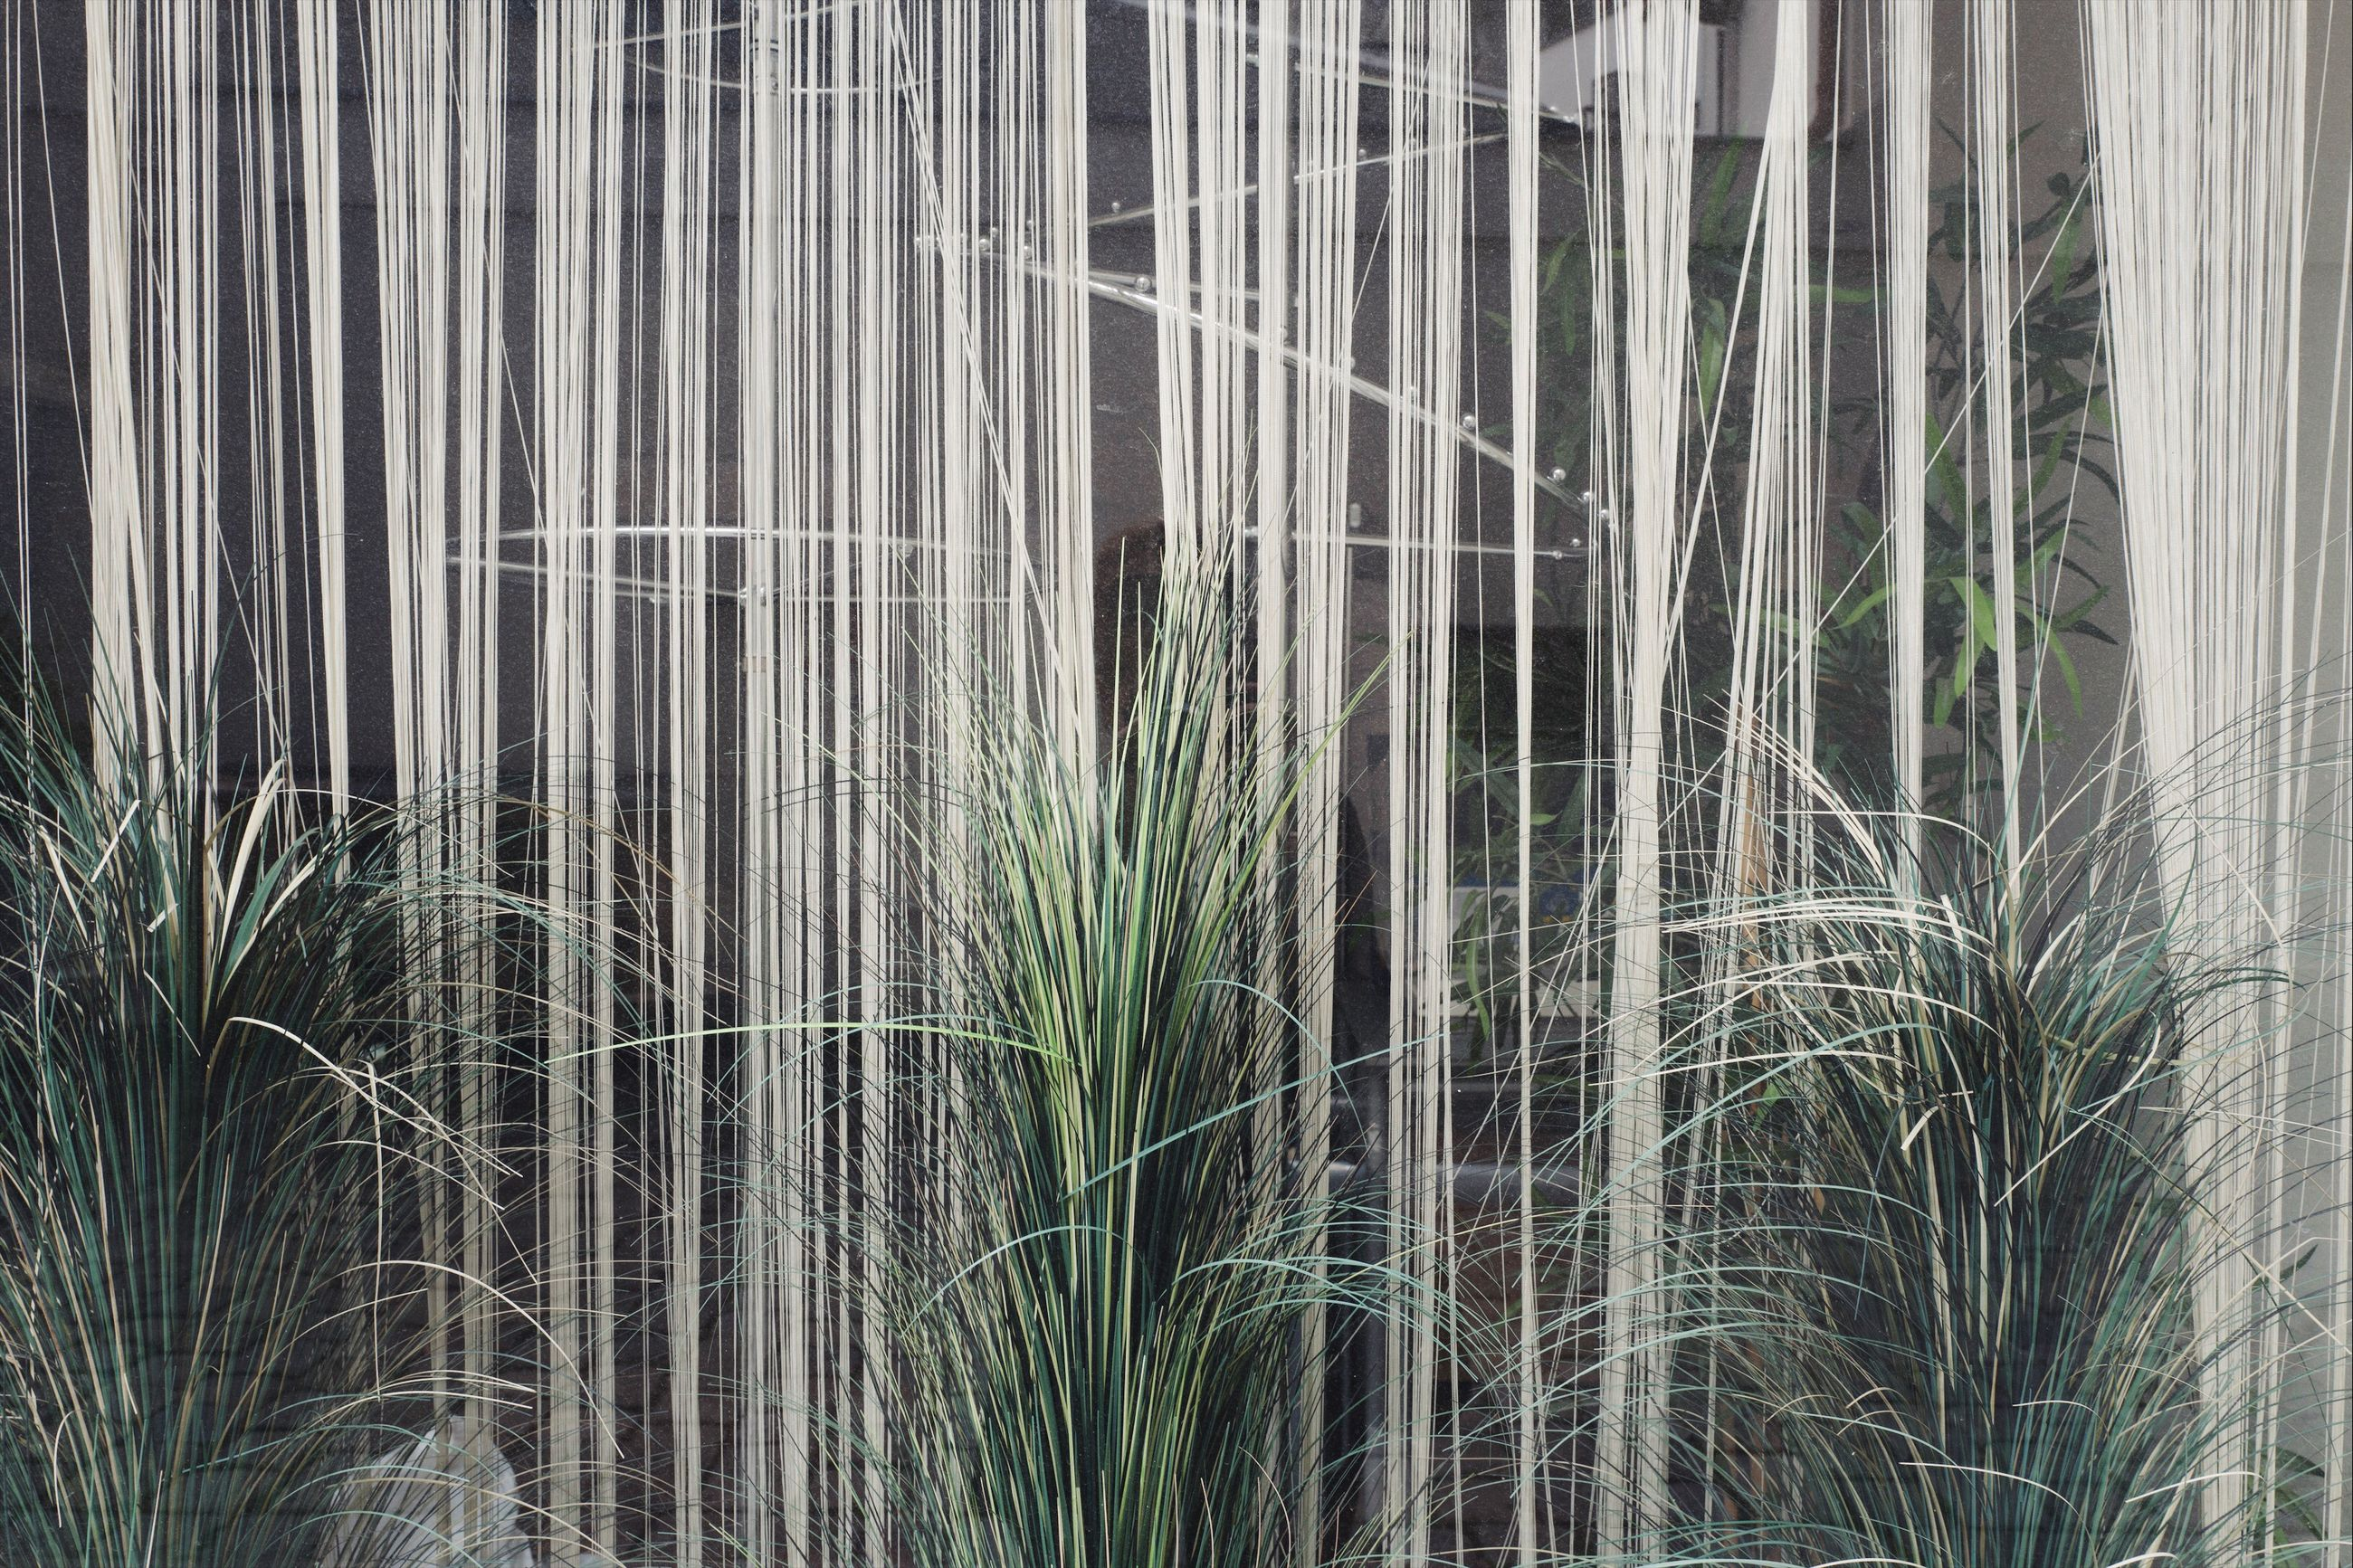 growth, plant, no people, beauty in nature, nature, grass, green color, day, land, tranquility, outdoors, close-up, backgrounds, bamboo - plant, water, field, tree, forest, agriculture, architecture